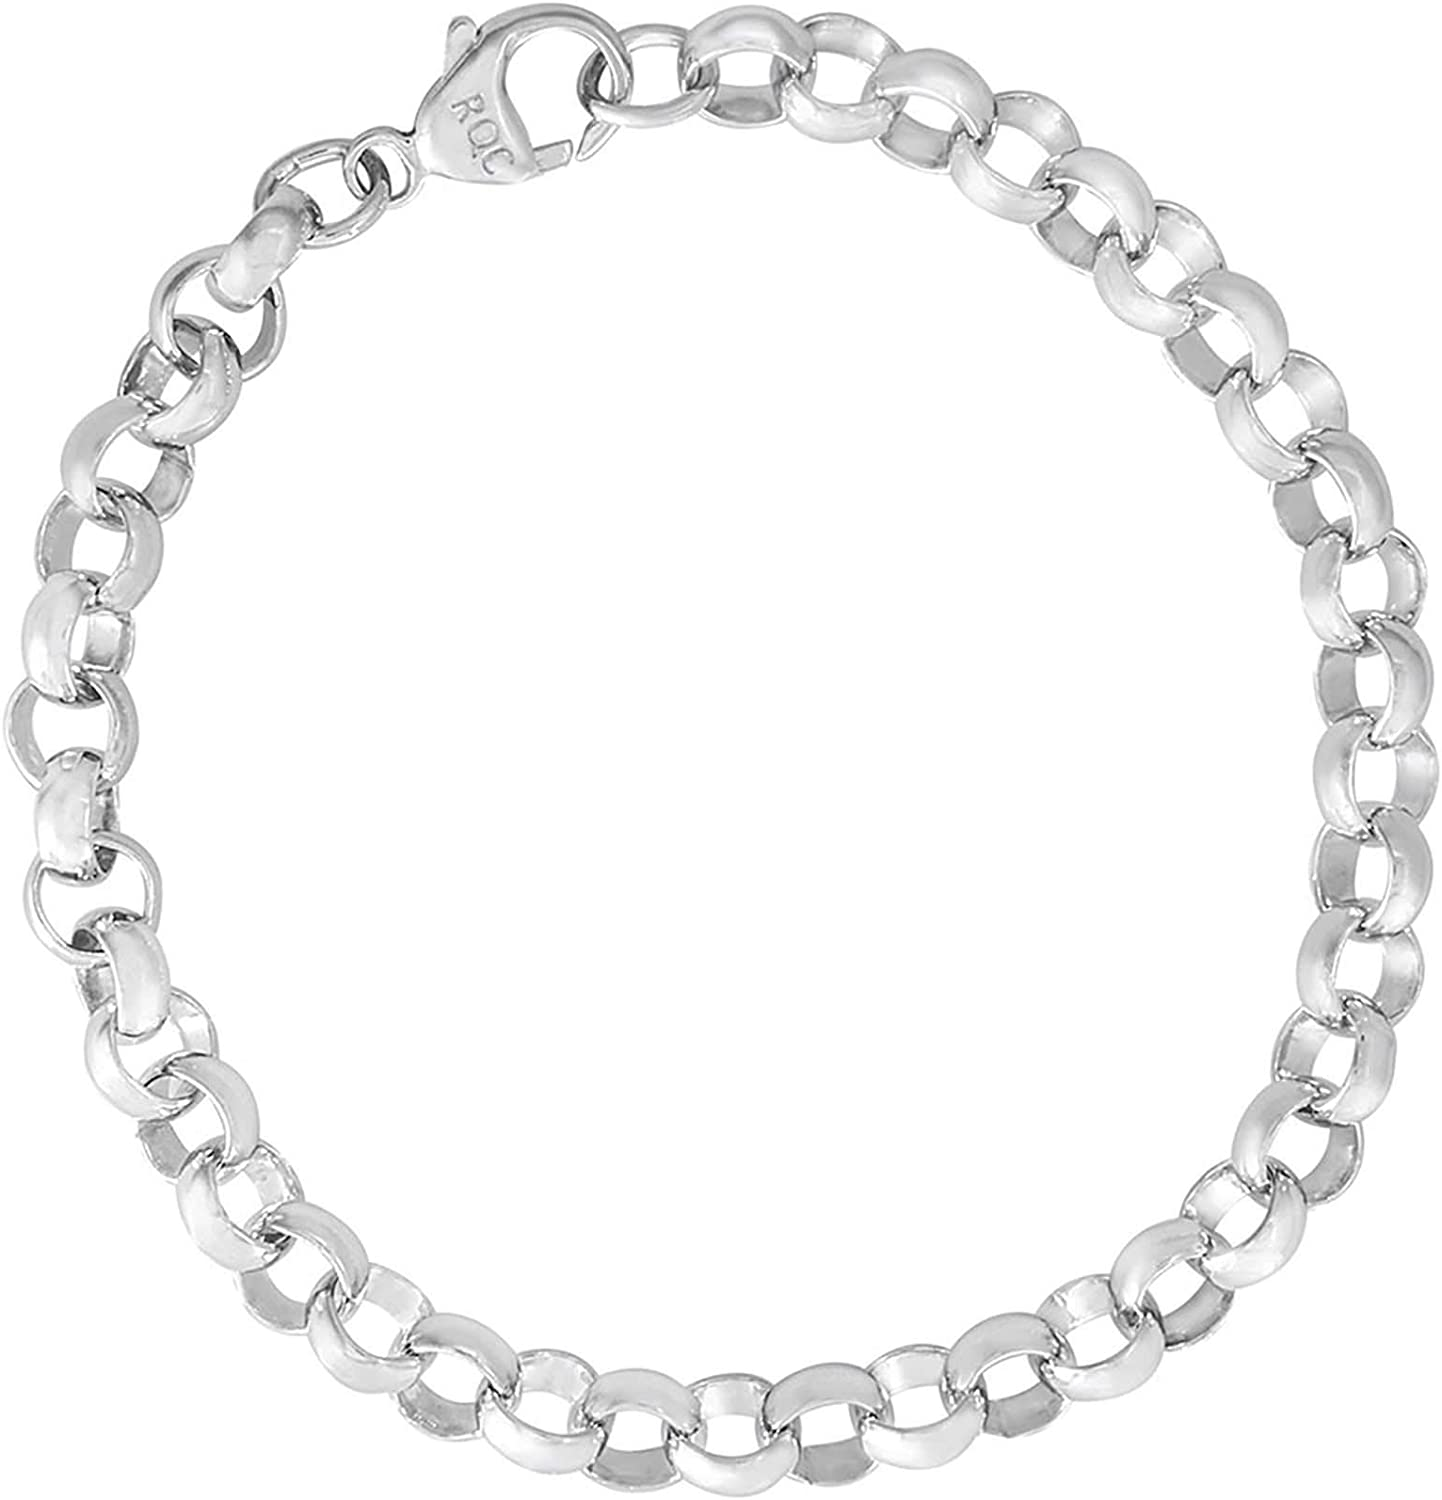 Rembrandt Excellence Charms 7-8